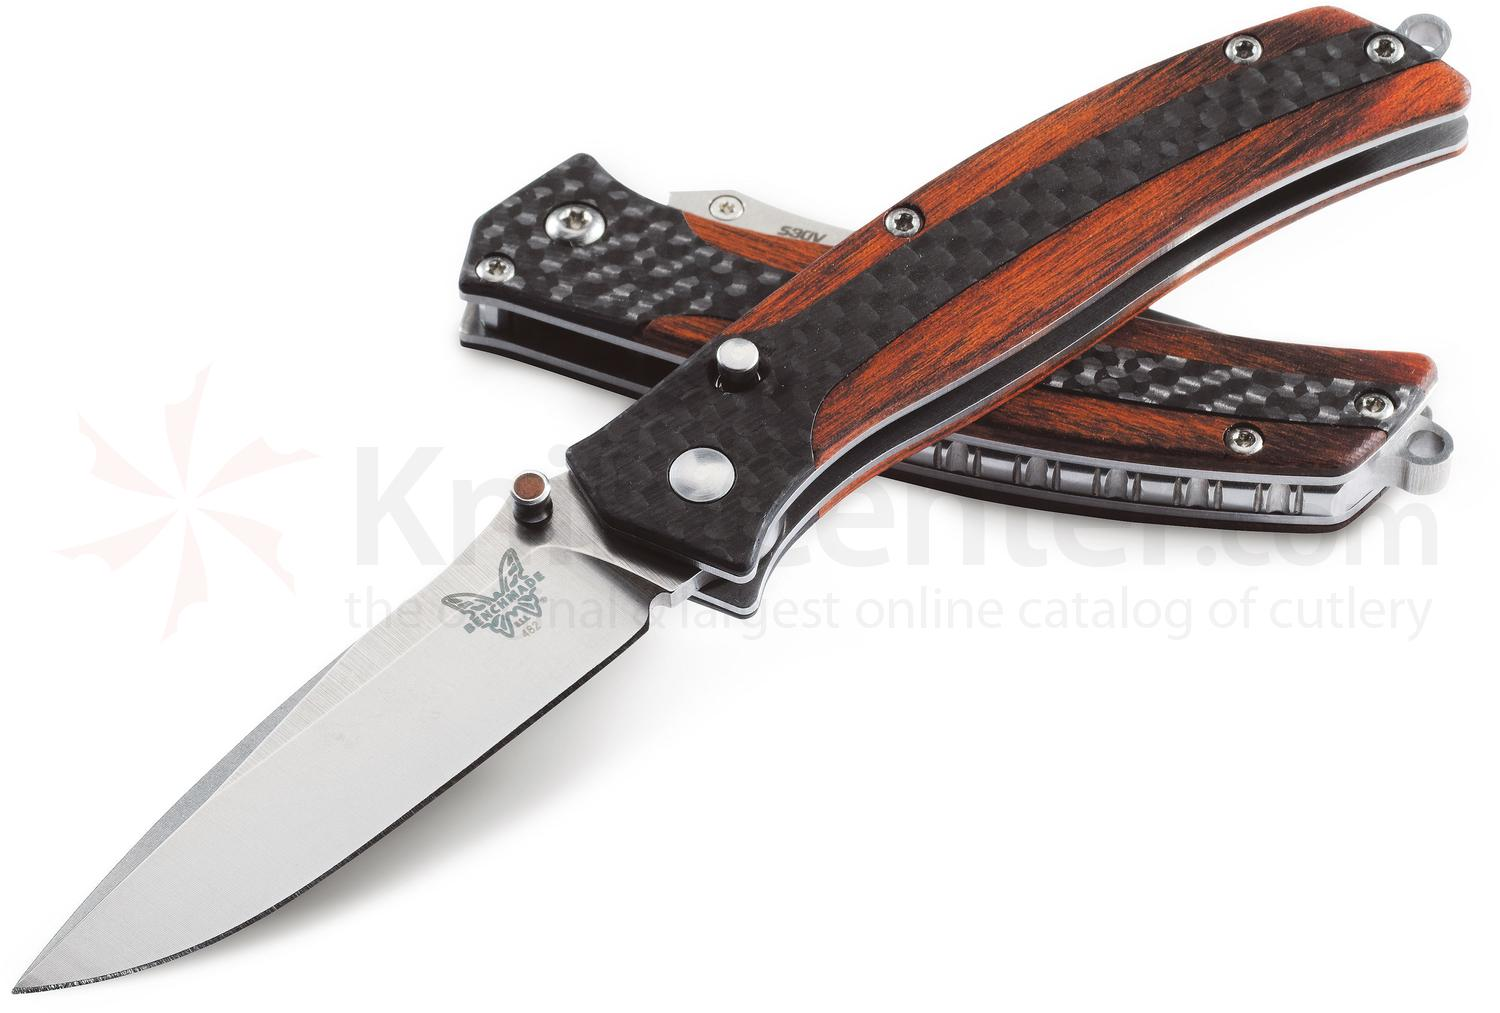 Benchmade 482 Megumi Gentlemans Folding Knife 2.48 inch S30V Plain Blade,  Cocobolo and Carbon Fiber